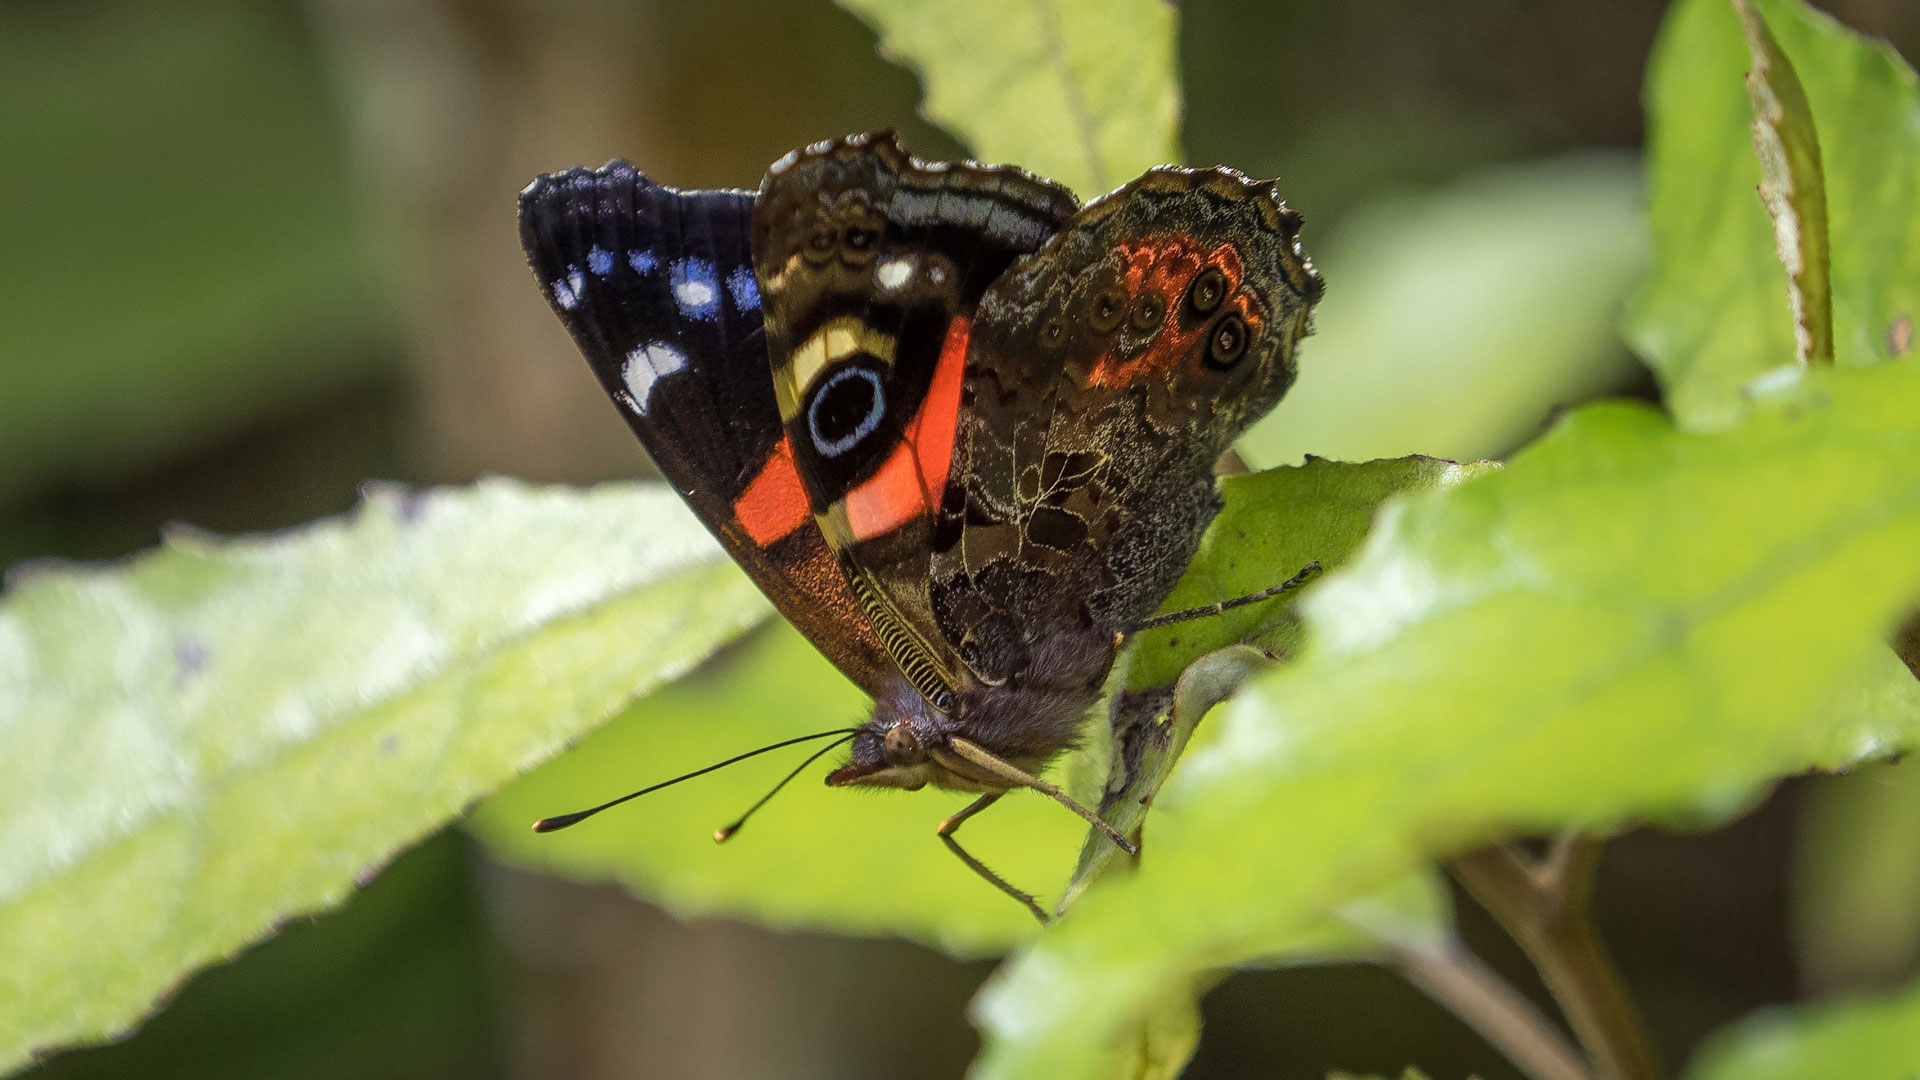 https://rfacdn.nz/zoo/assets/media/red-admiral-gallery-6.jpg